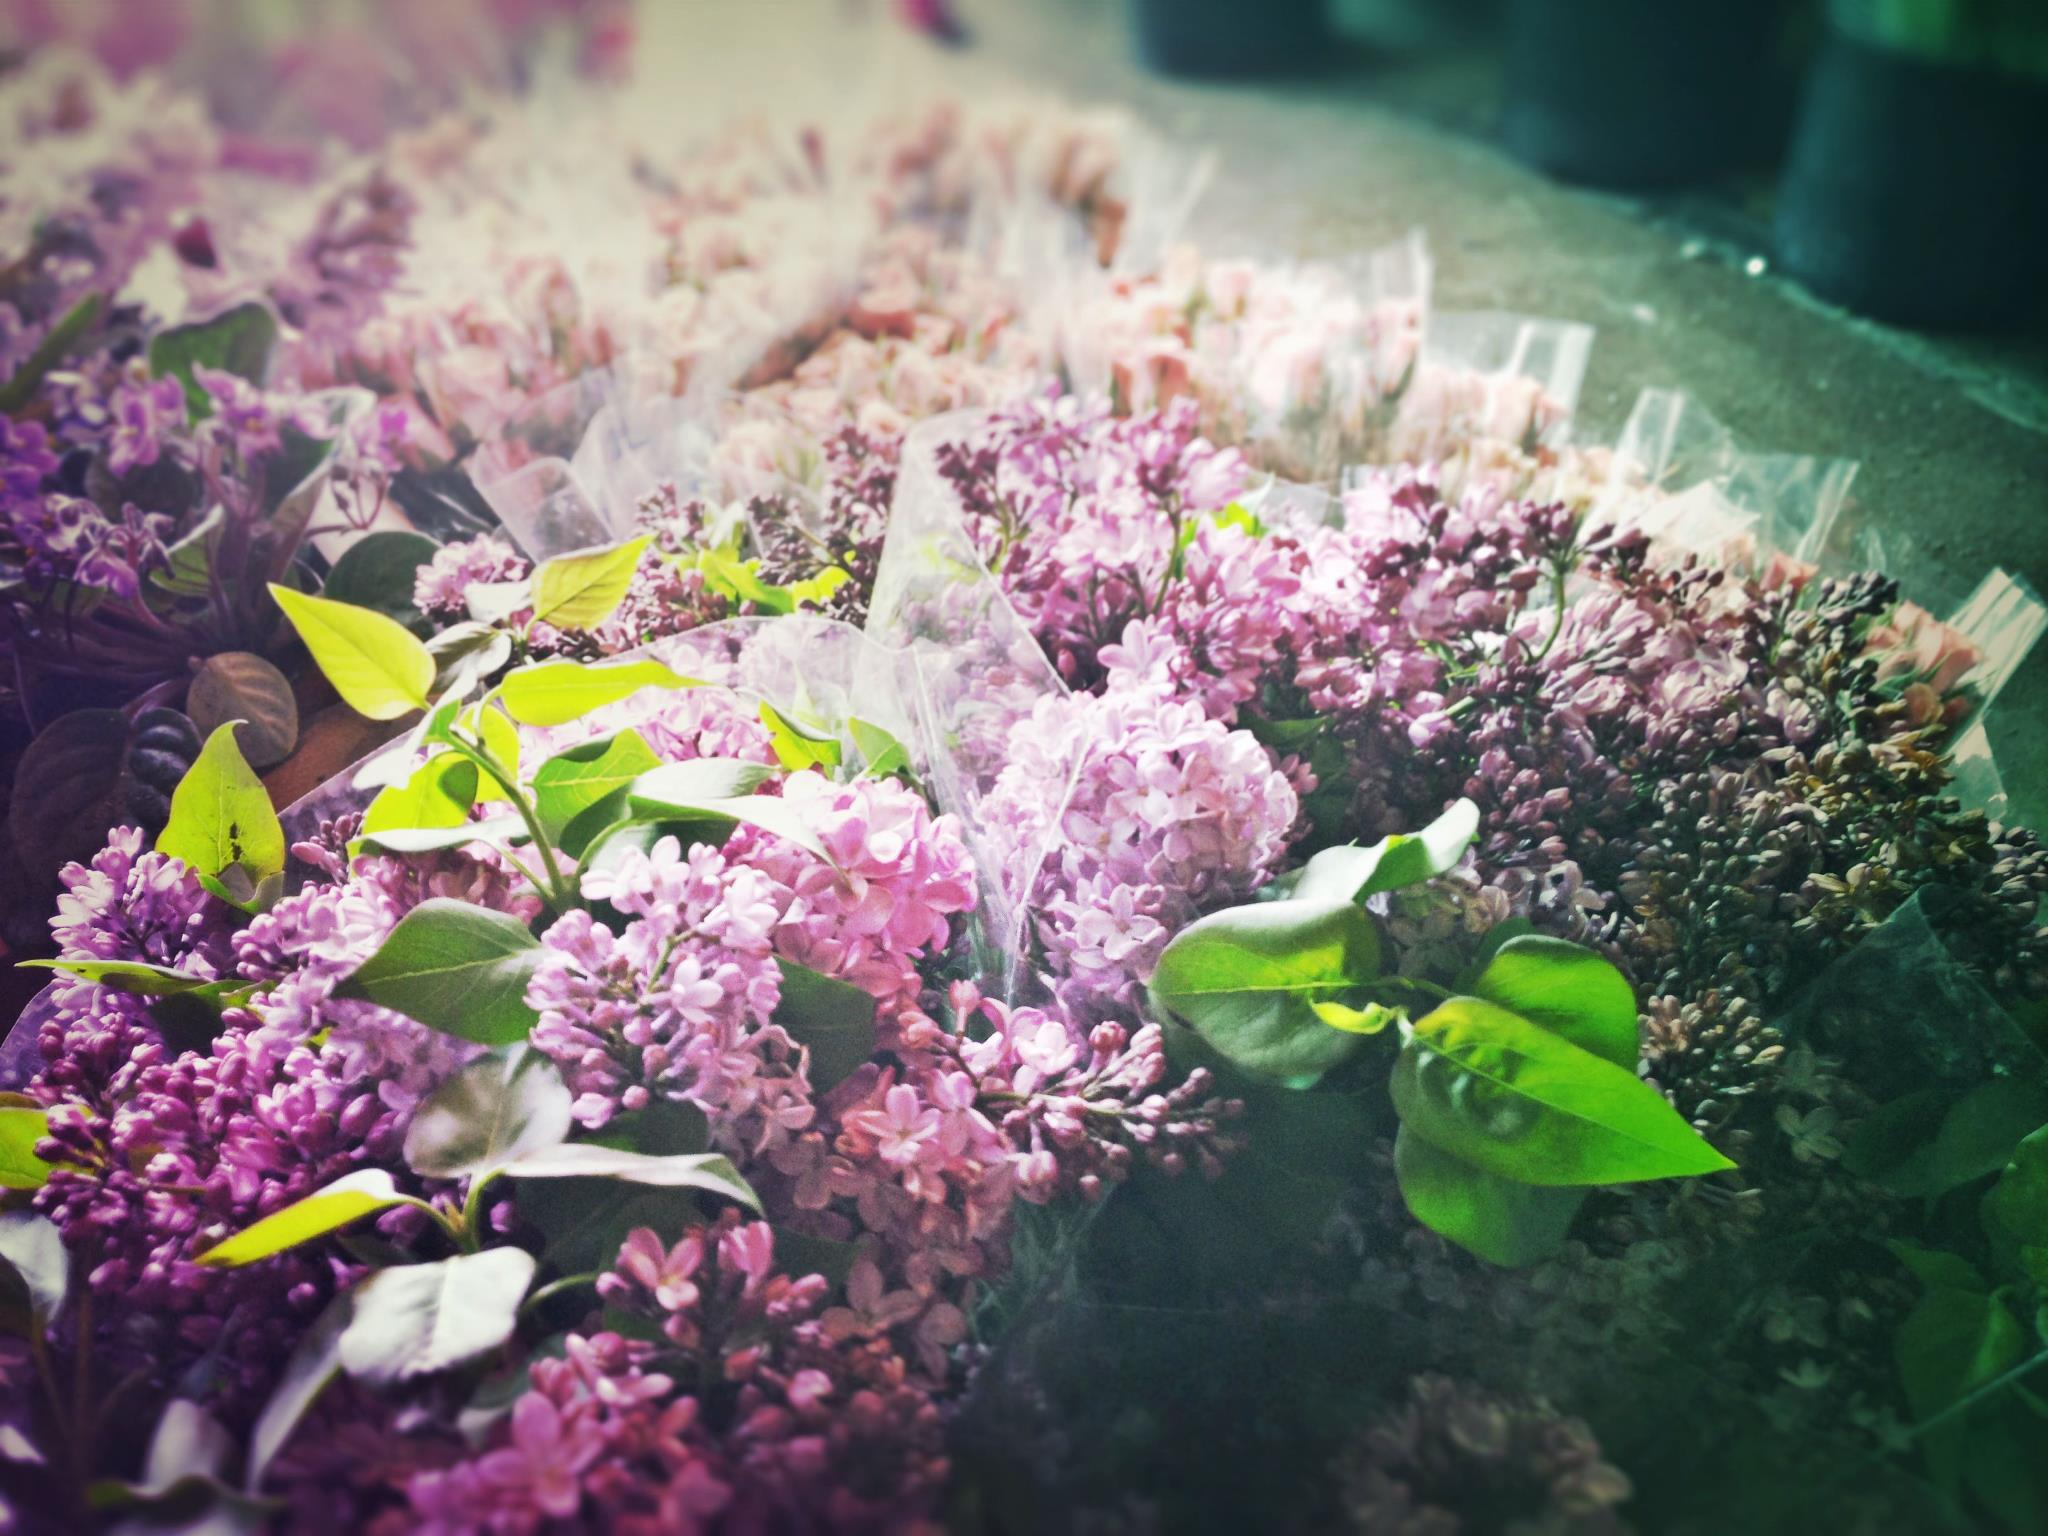 """Lilacs at B<a href=""""https://www.facebook.com/photo.php?fbid=10151437344634902&amp;set=a.10150560046124902.382093.317142004901&amp;type=1&amp;theater"""">rattle Square Florist</a>/Facebook"""